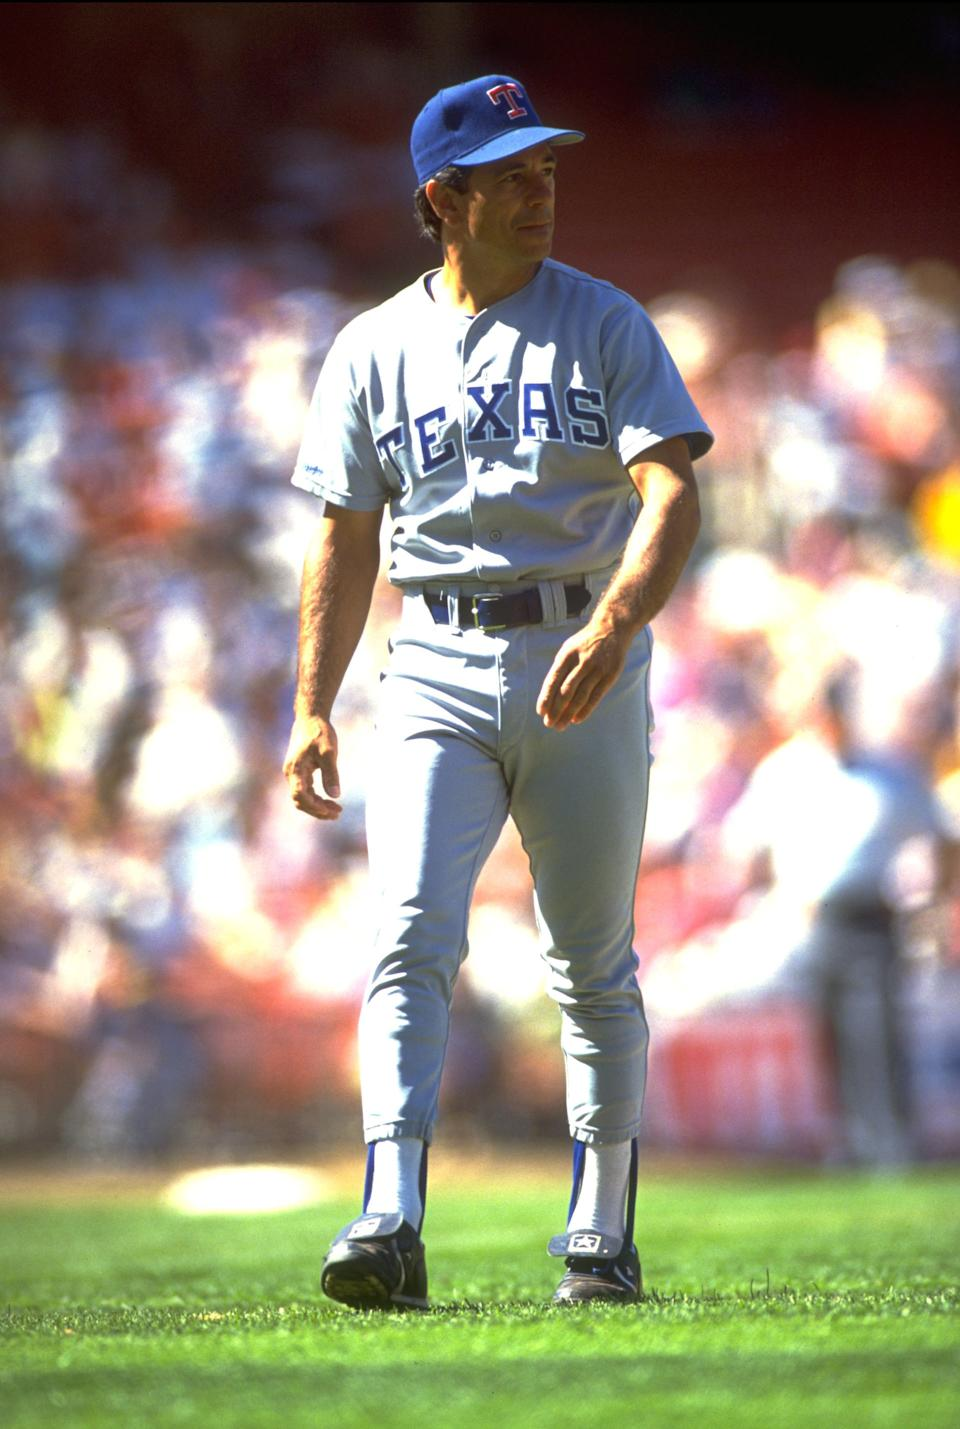 Texas Ranger manager Bobby Valentine durning a Rangers vs. Oakland Athletics game at the Oakland Coliseum, 1990.